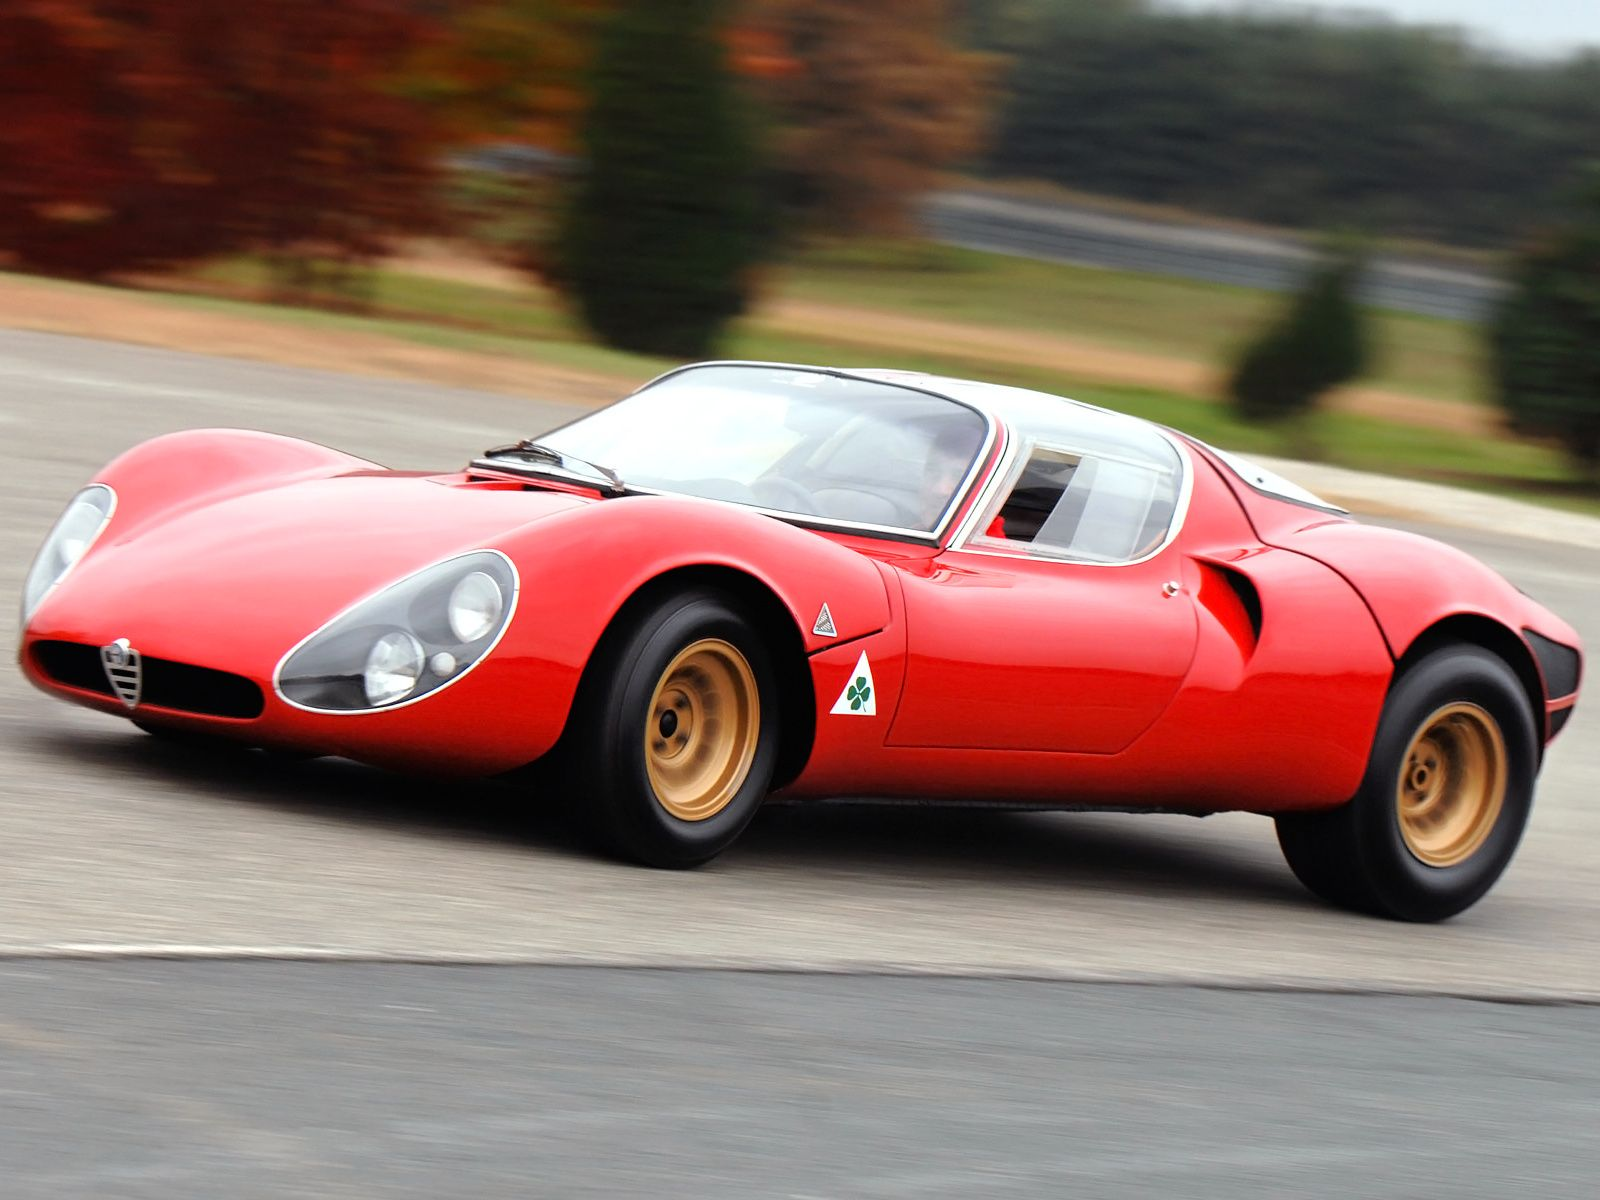 The 33 Stradale is the first production vehicle to feature dihedral